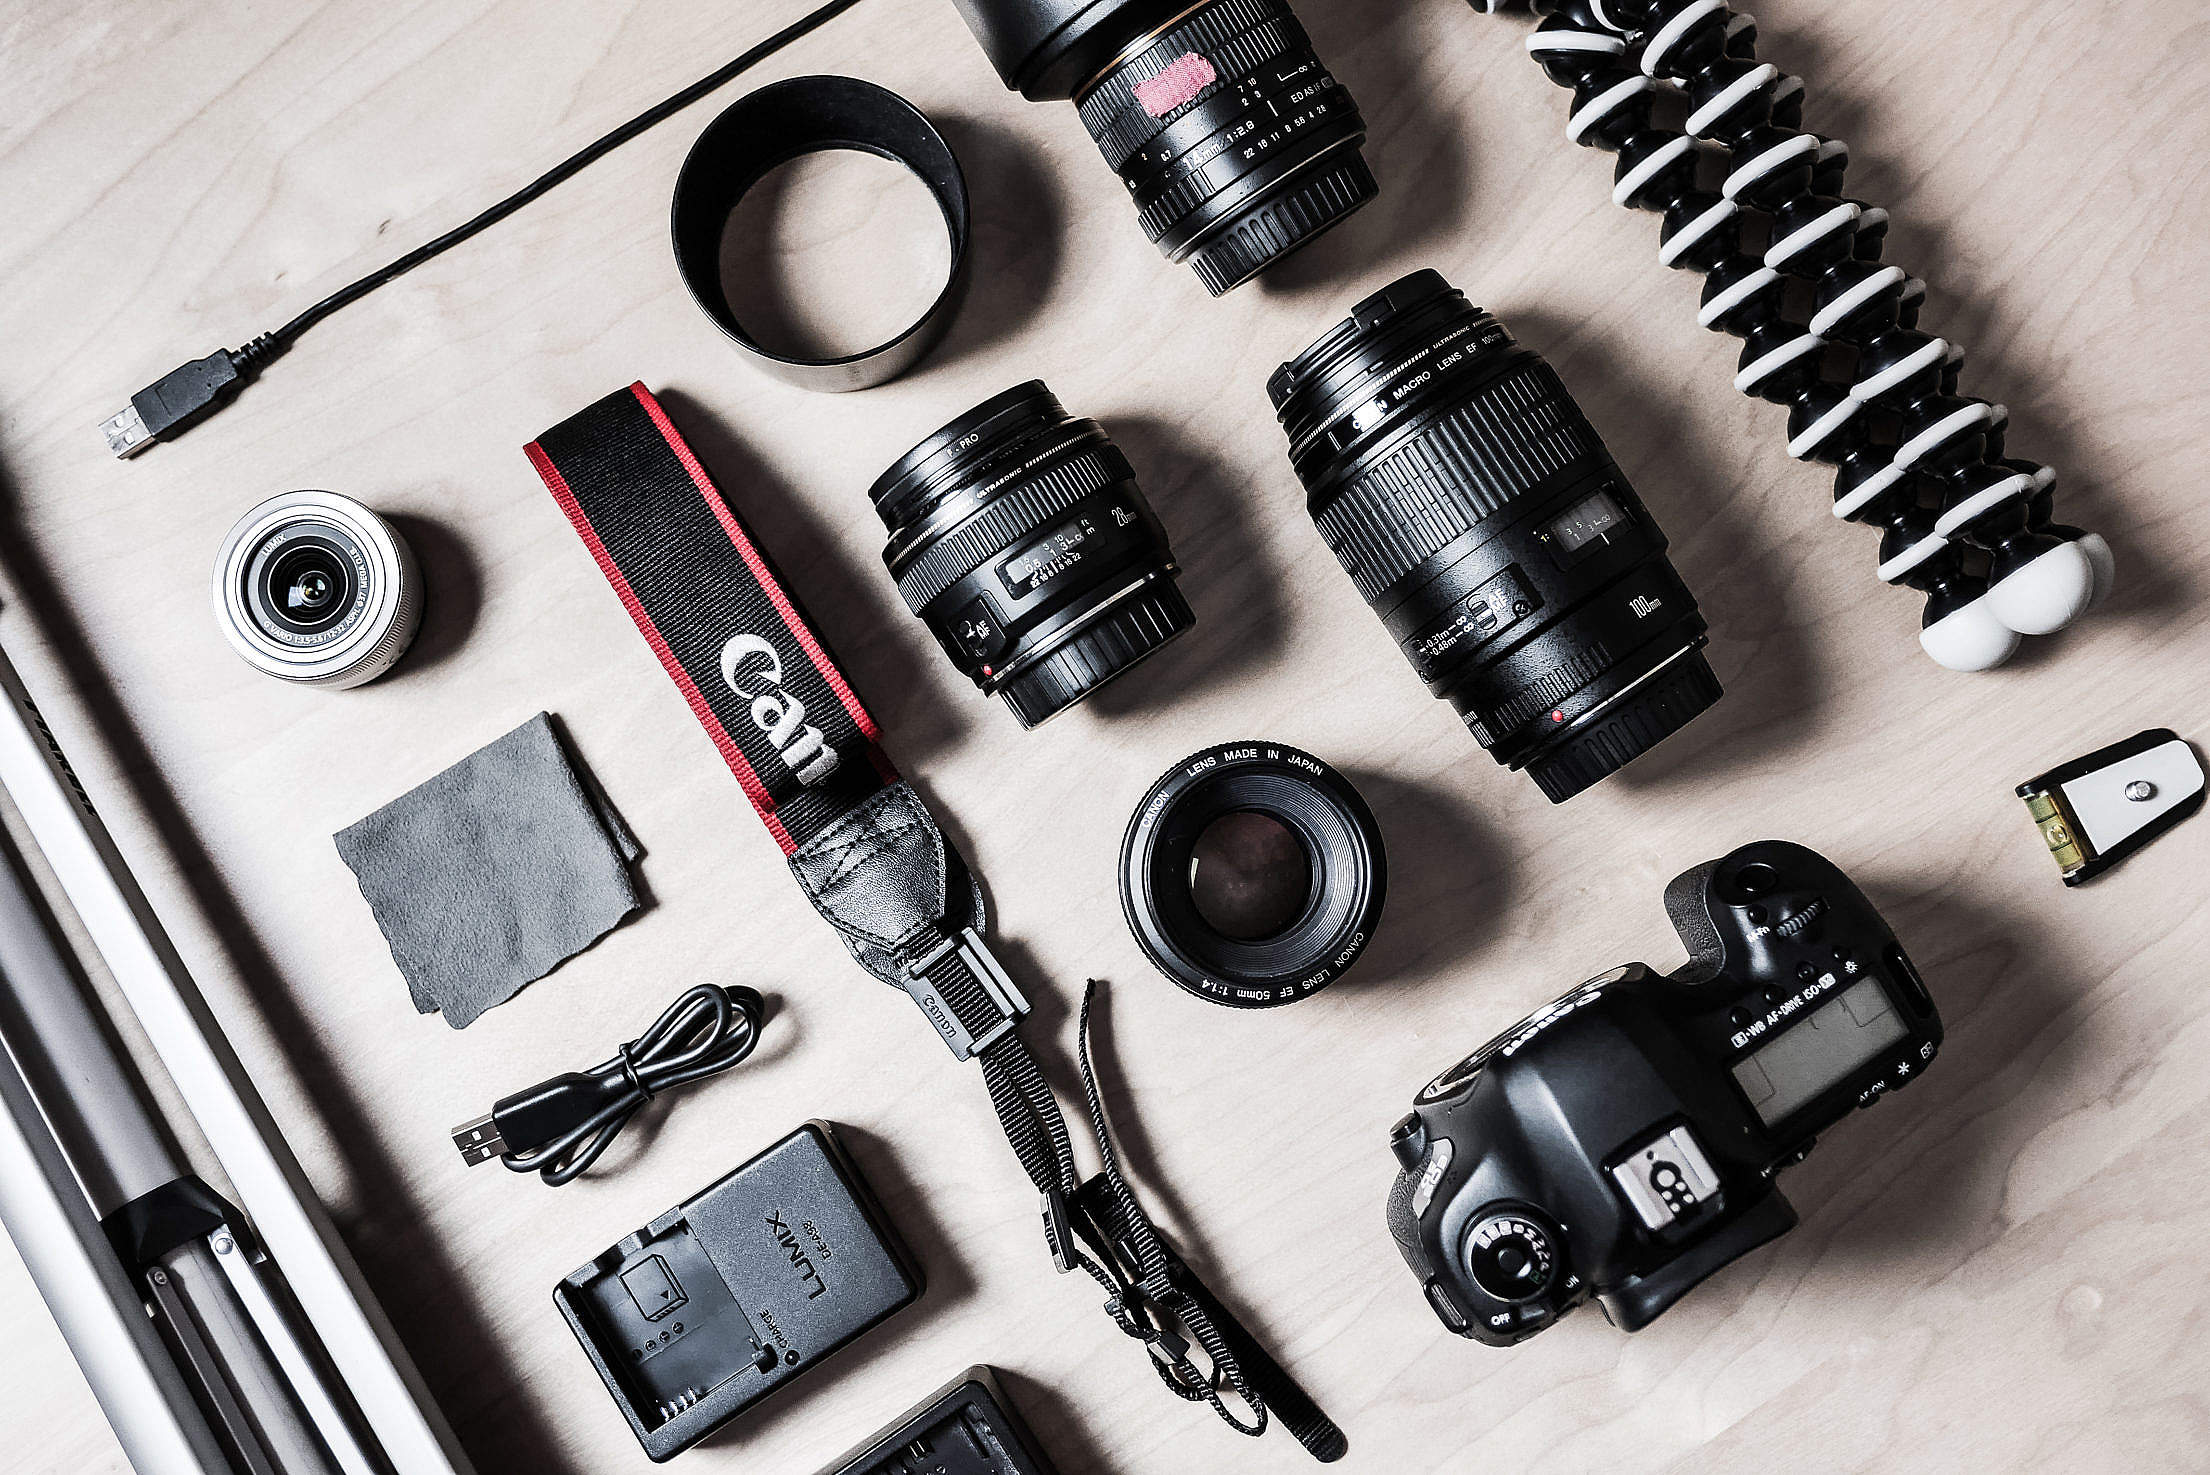 The Photographer's DSLR Camera Equipment Free Stock Photo